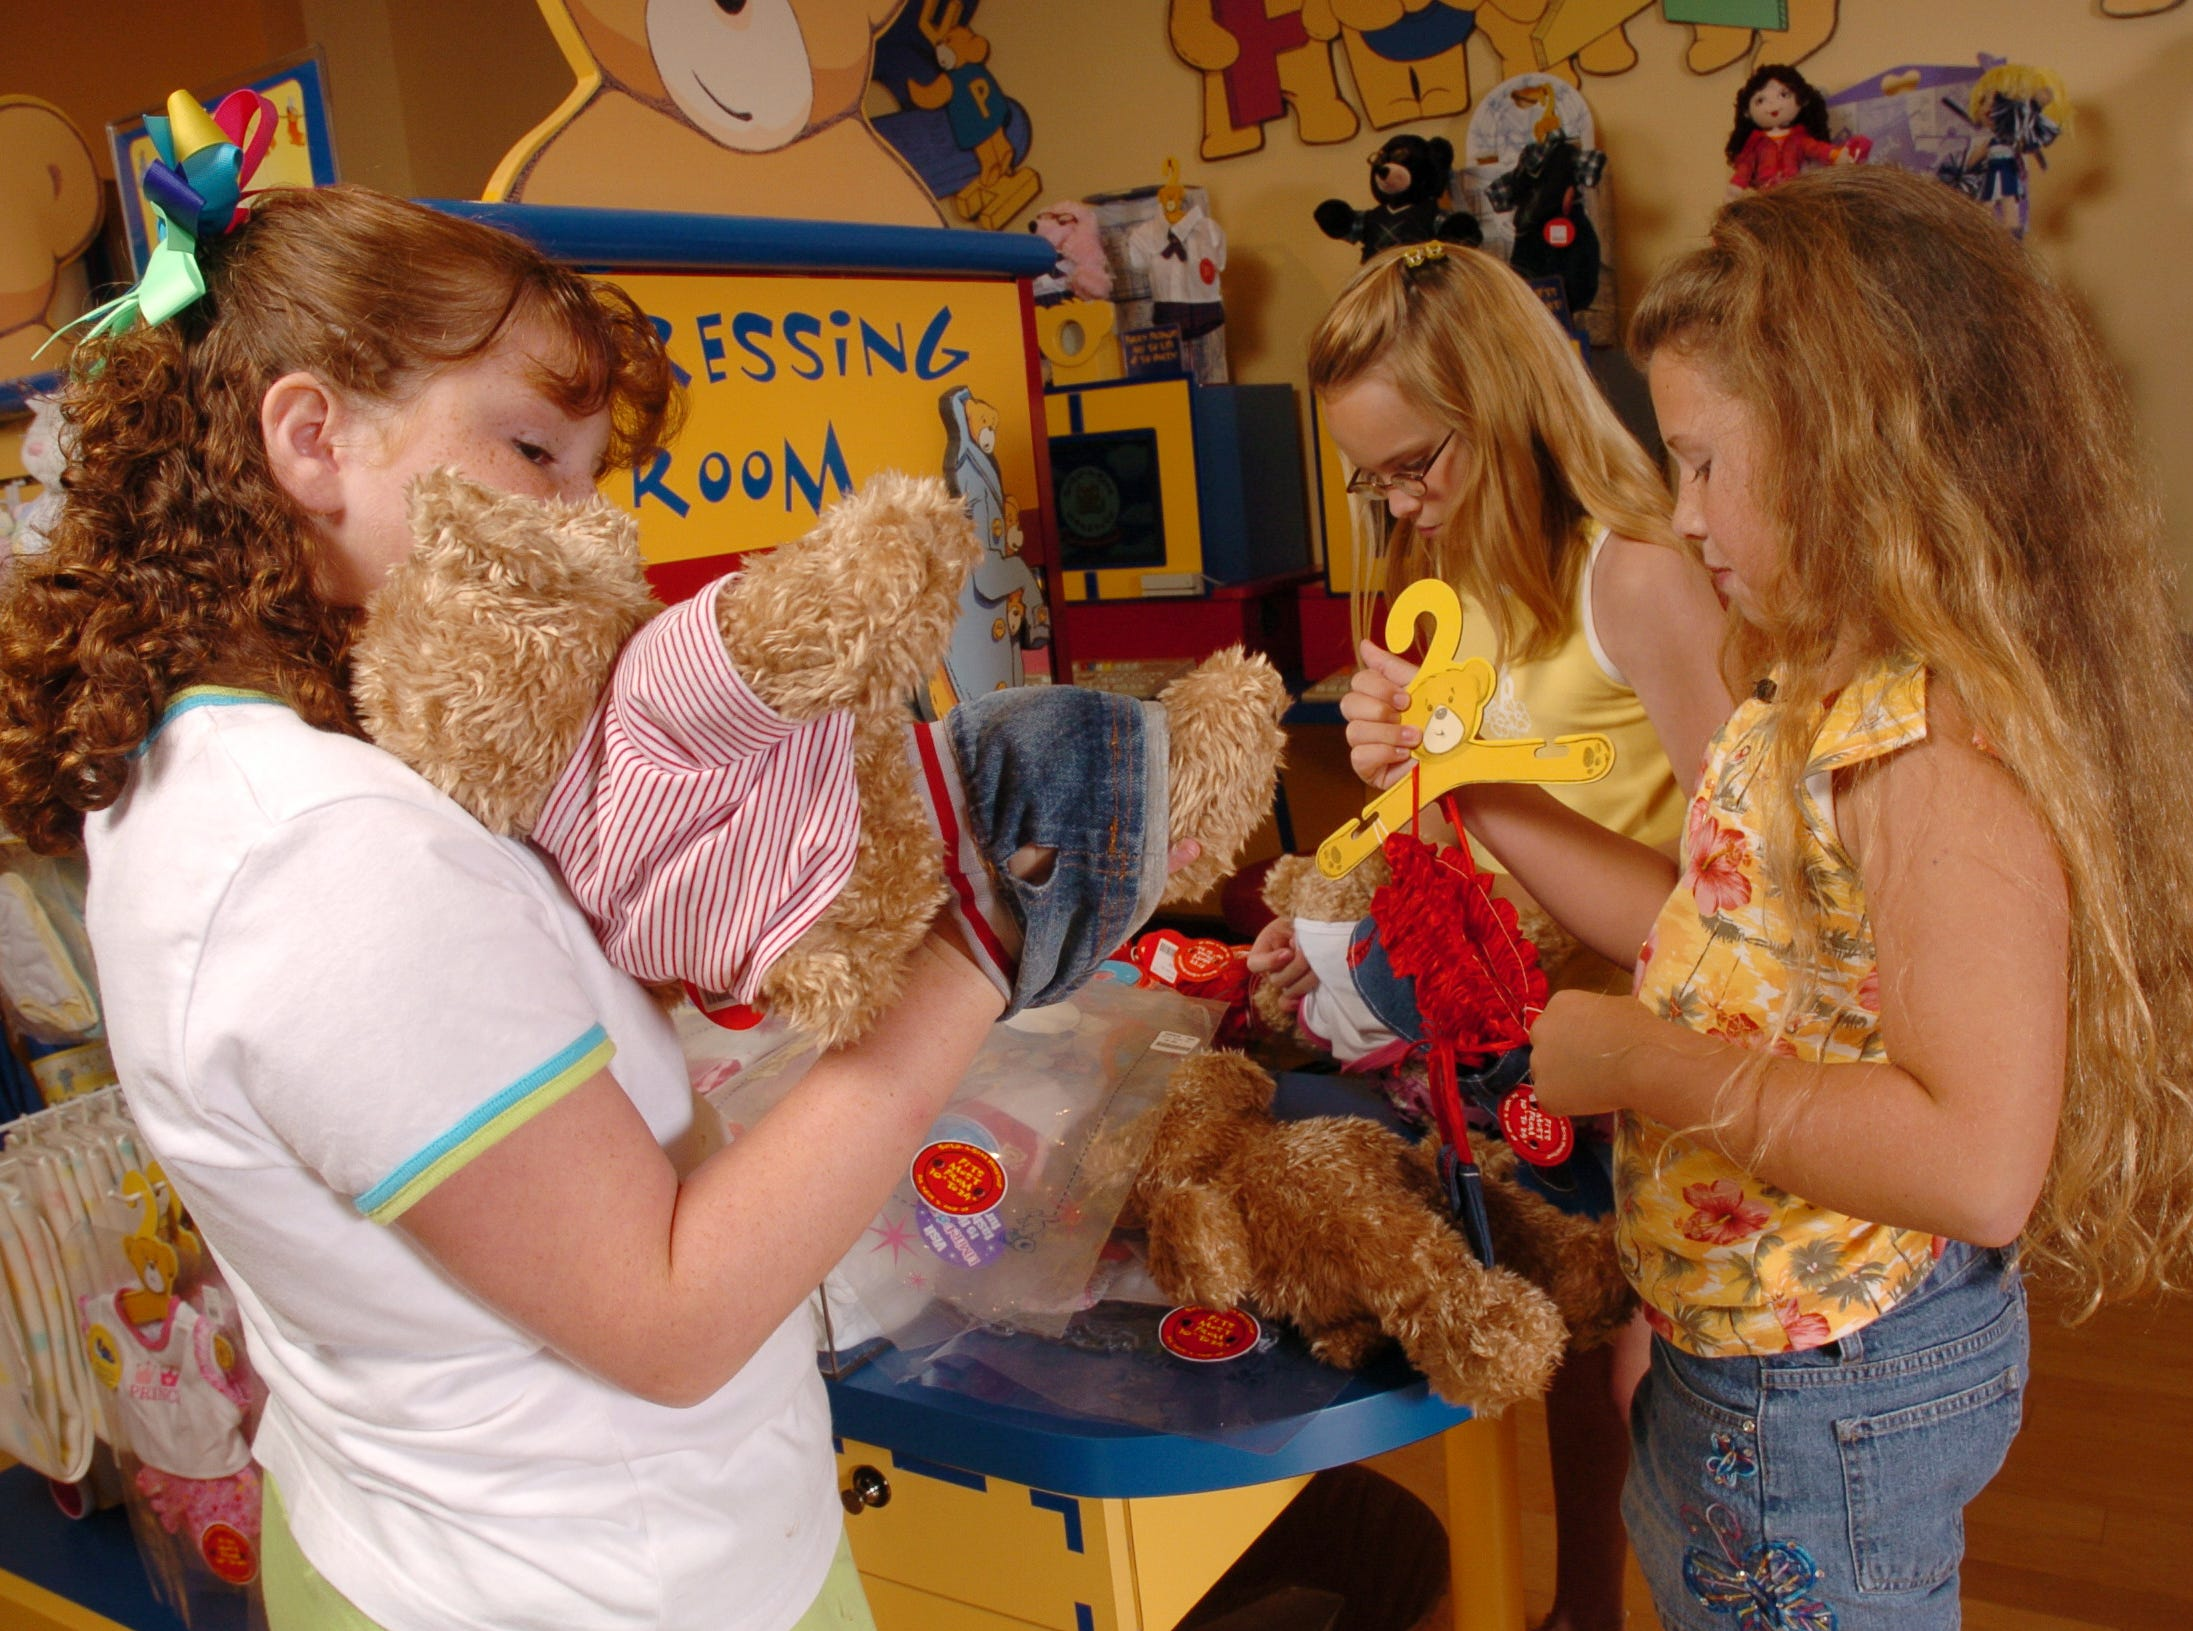 From left, Paige Van de Vuurst, 10, Katy Honeycutt, 9, and Caitlin Aiken, 9, outfit bears Thursday at the Build a Bear Workshop store in West Town Mall.  The girls are from Limestone, TN, and they collected enough money to buy 80 bears that they will give to children at Johnson City Medical Center. 8/5/2004